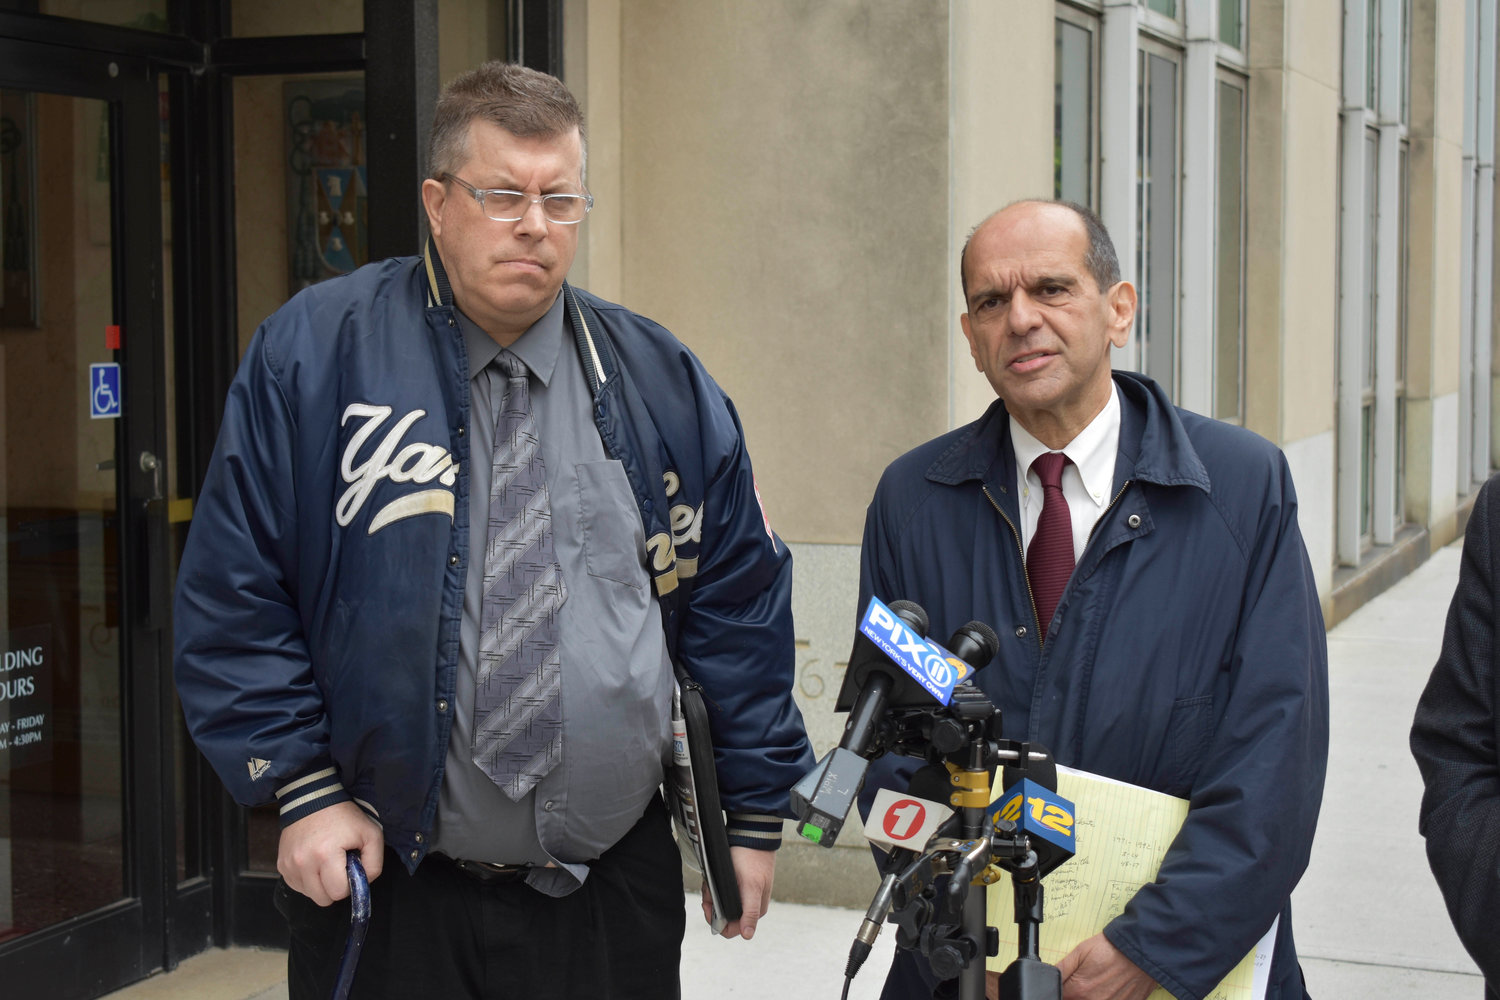 Boston attorney Mitchell Garabedian, right, who has handled hundreds of sexual abuse cases, spoke at a news conference in October 2017. He stood beside sexual abuse survivor Thomas McGarvey.